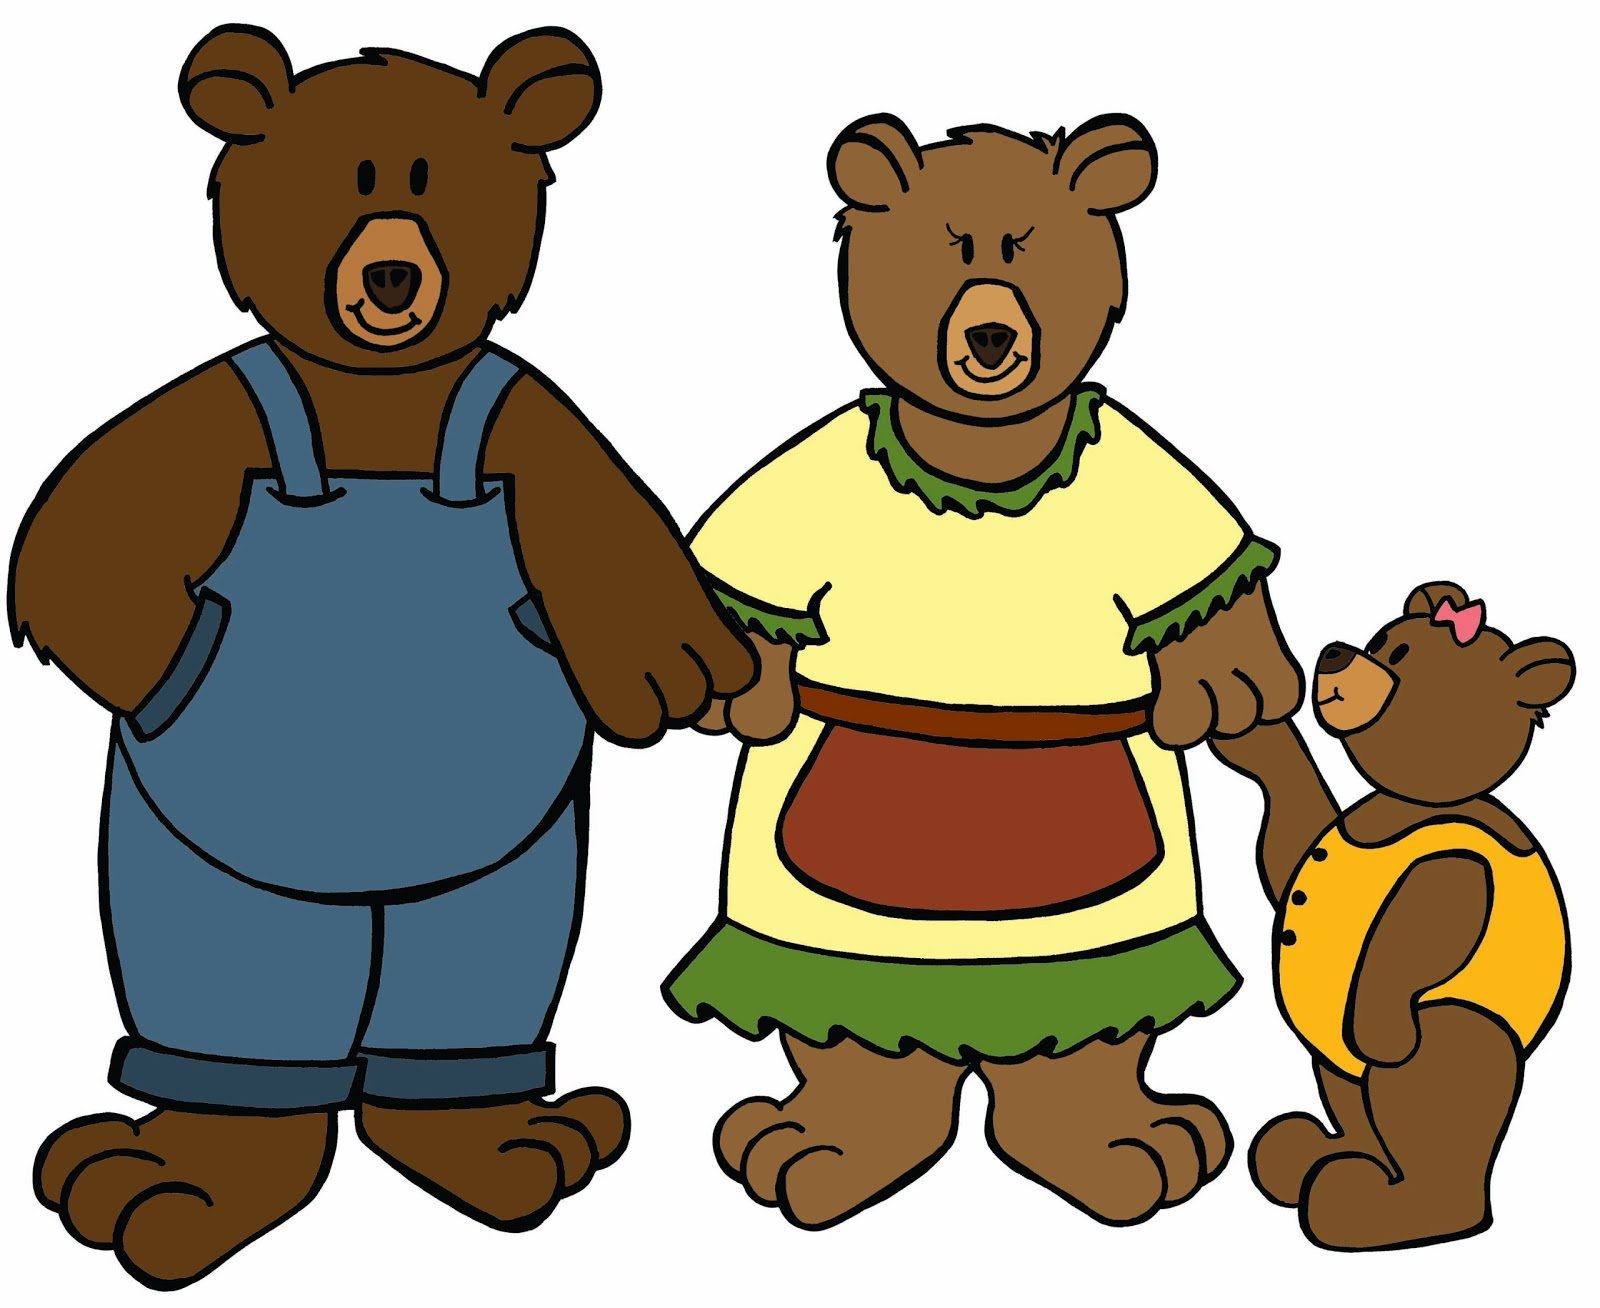 Kindergarten Crayons Meet The Bear Family